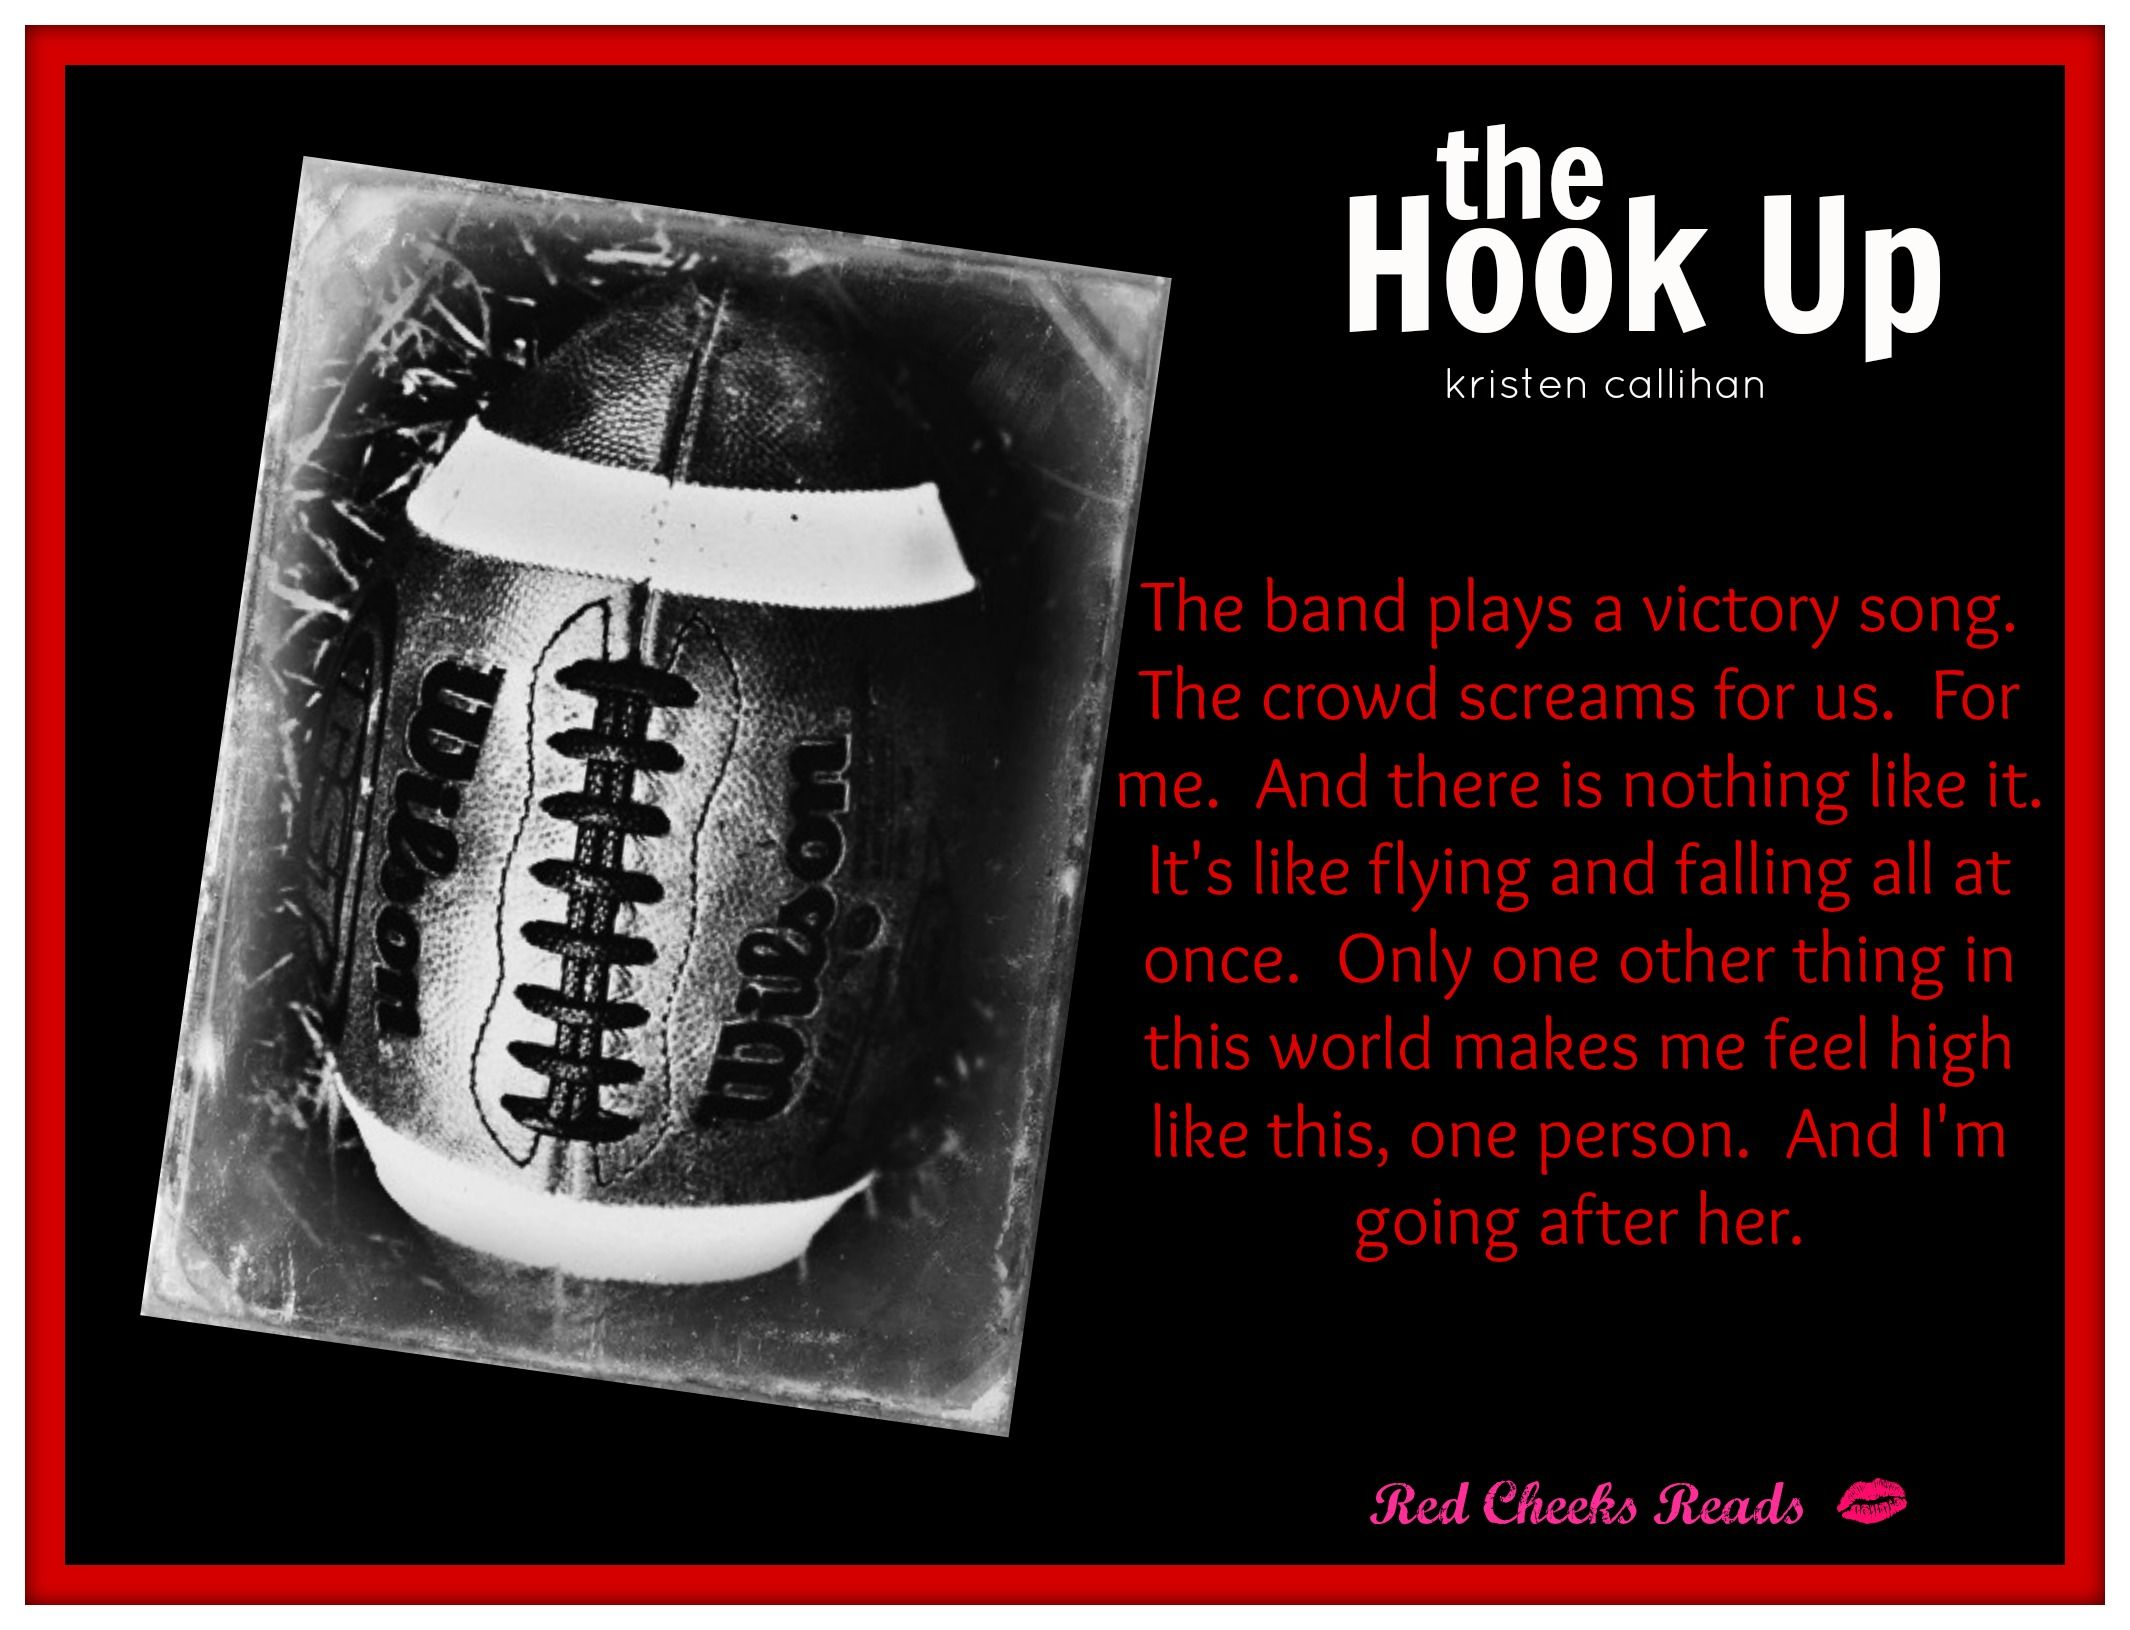 Read the hook up by kristen callihan